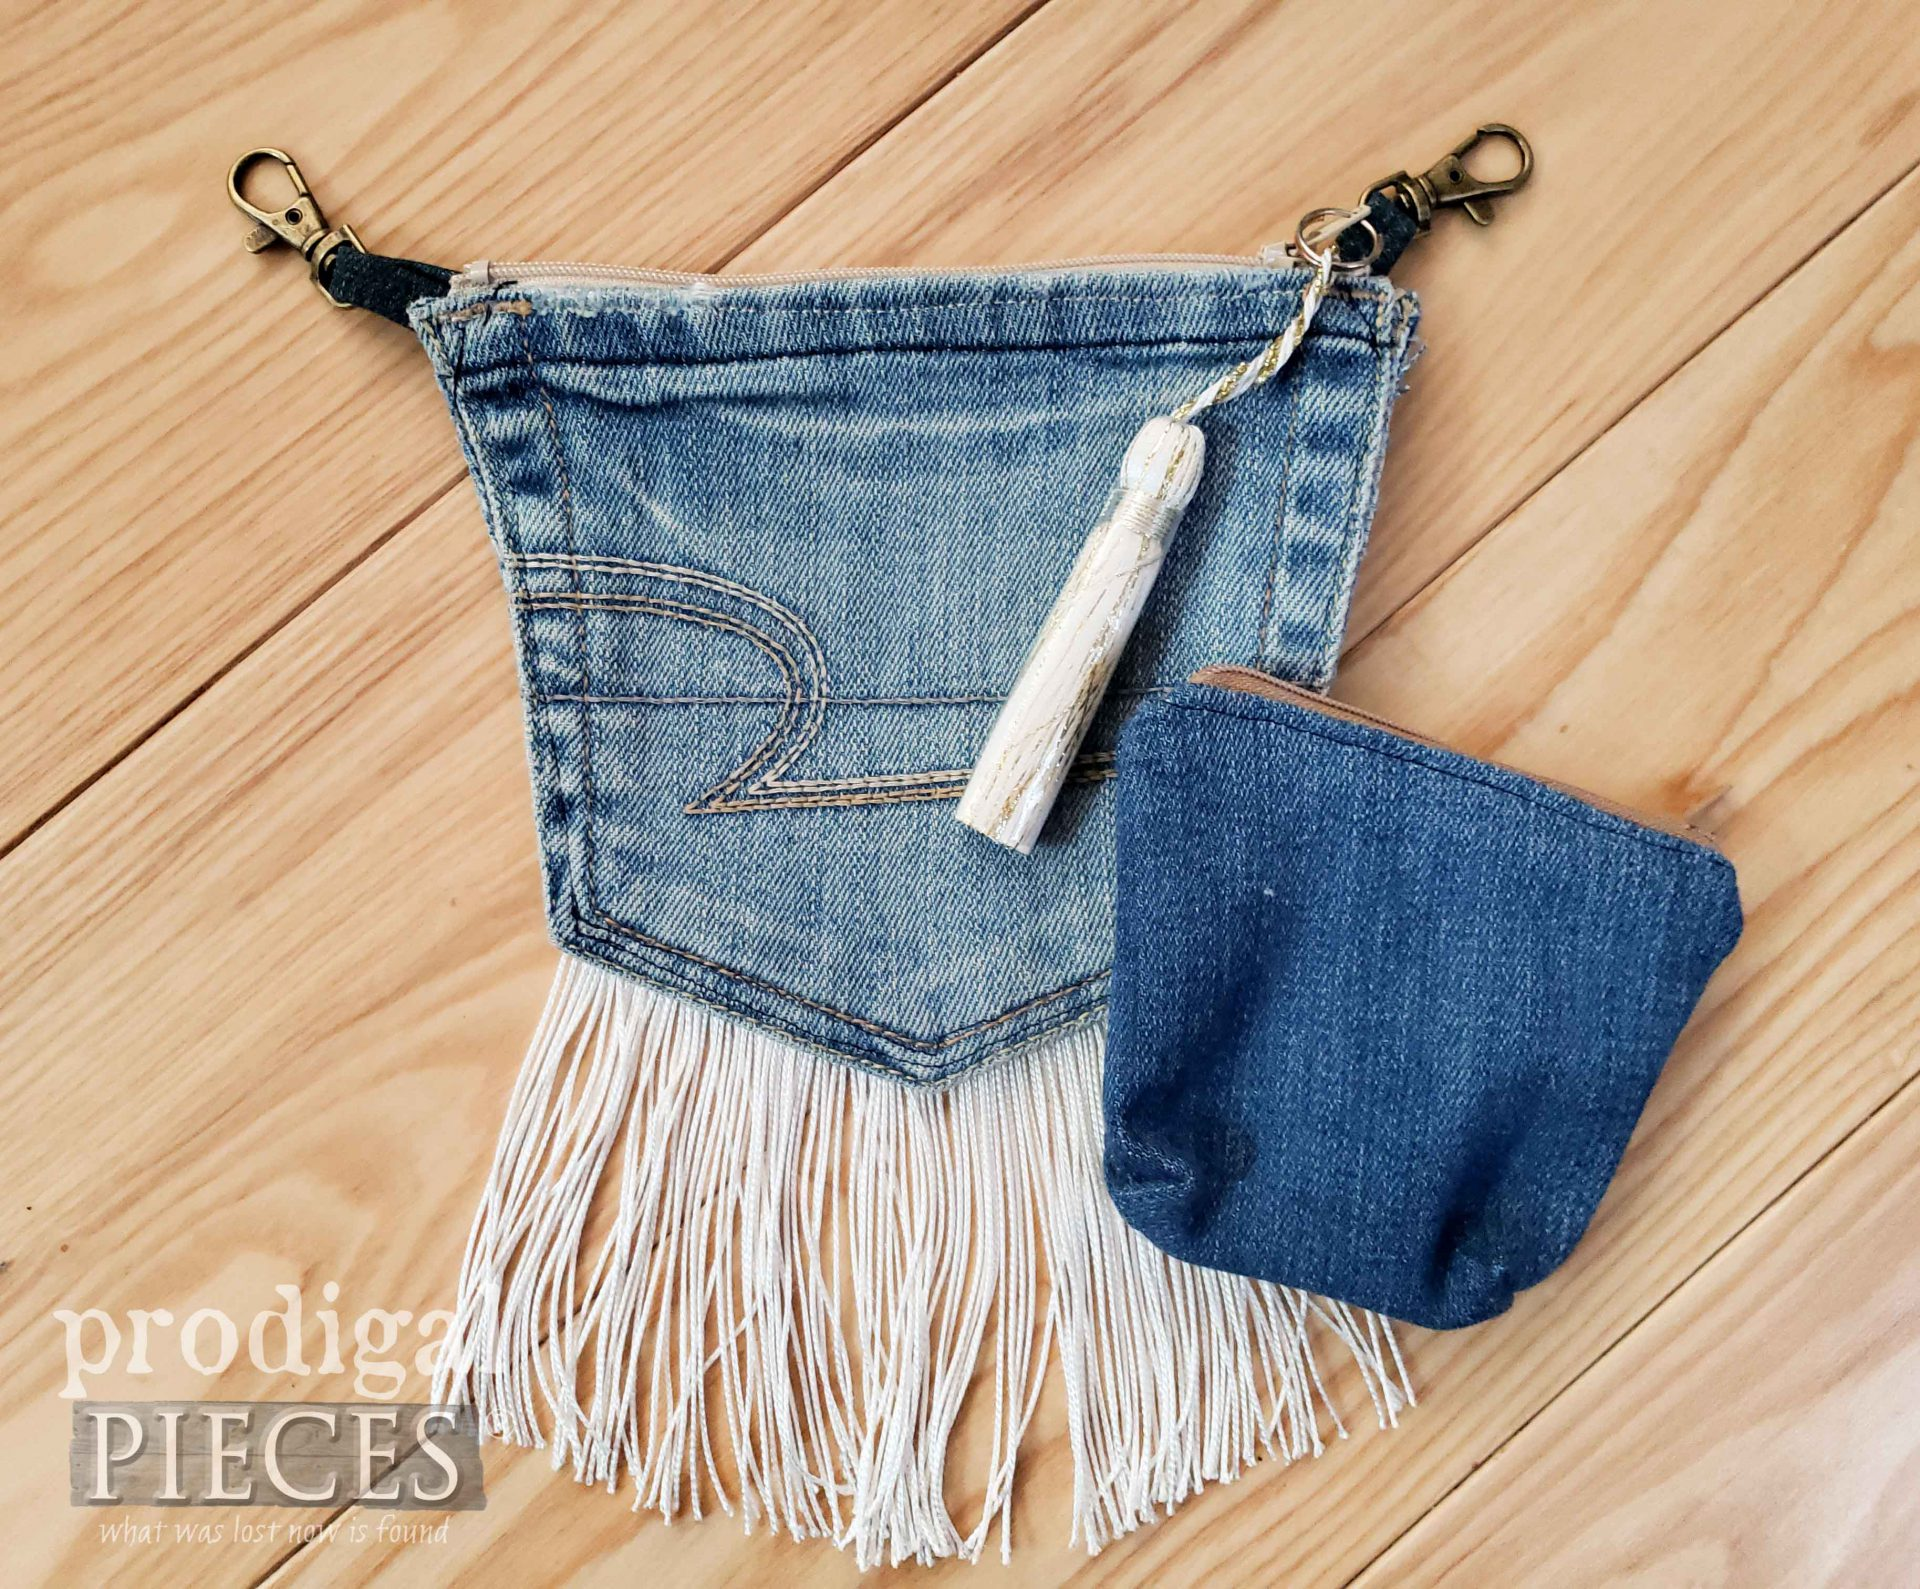 Cute Belt-Loop Beige Purse made from Upcycled Denim Jeans by Larissa of Prodigal Pieces | prodigalpieces.com #prodigalpieces #diy #fashion #crafts #style #women #bags